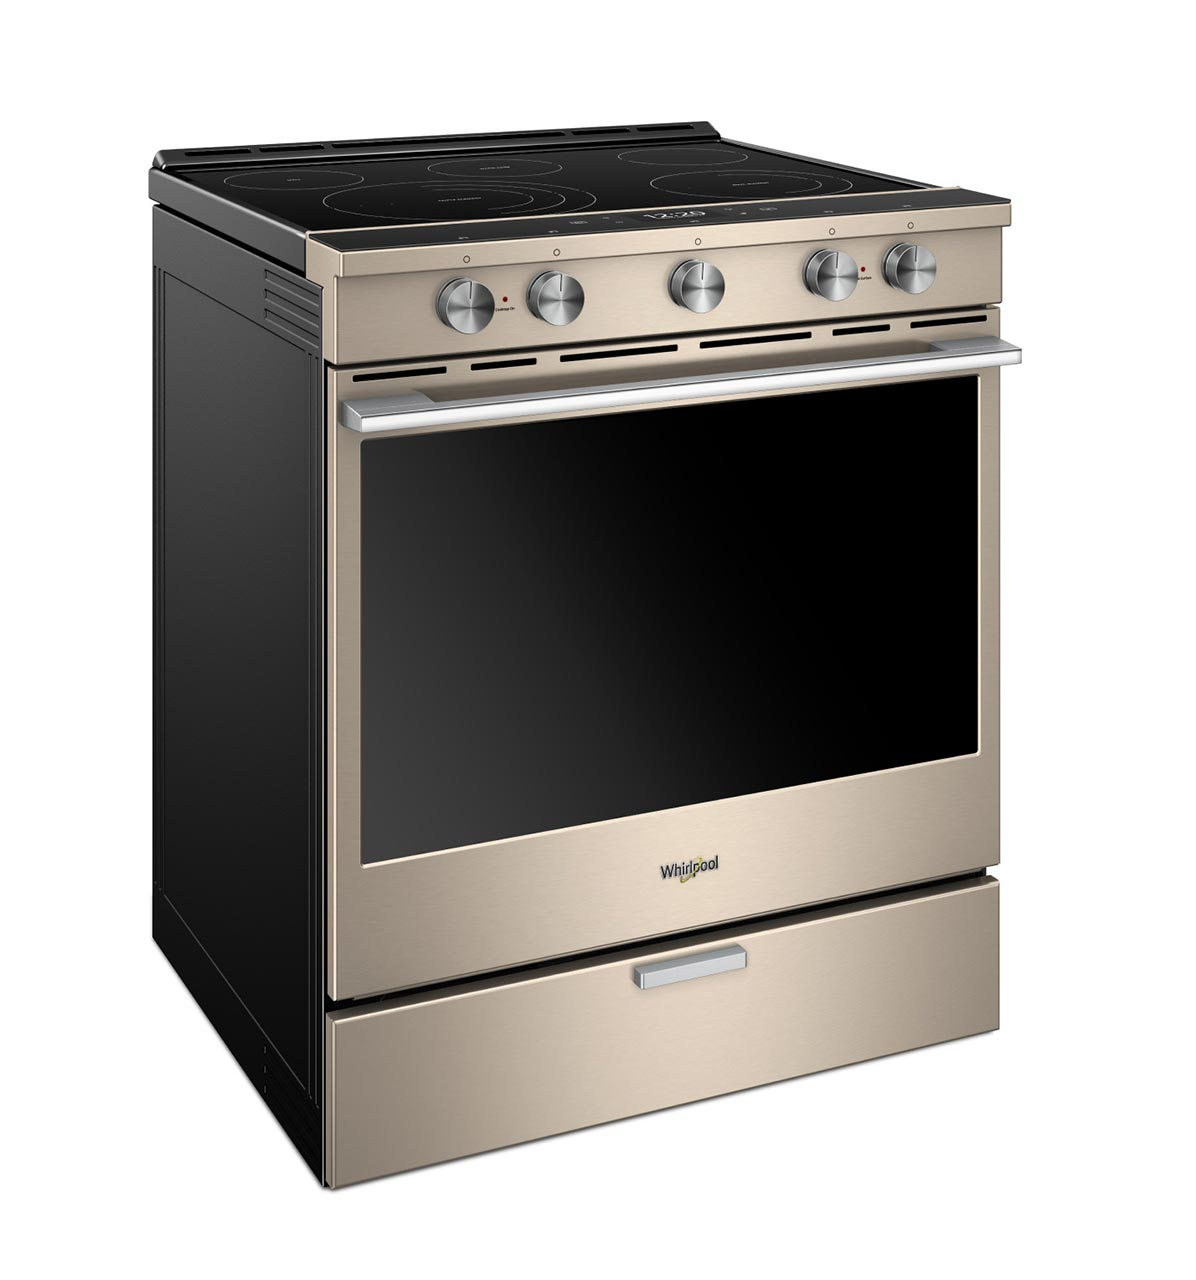 Whirlpool, Smart Kitchen